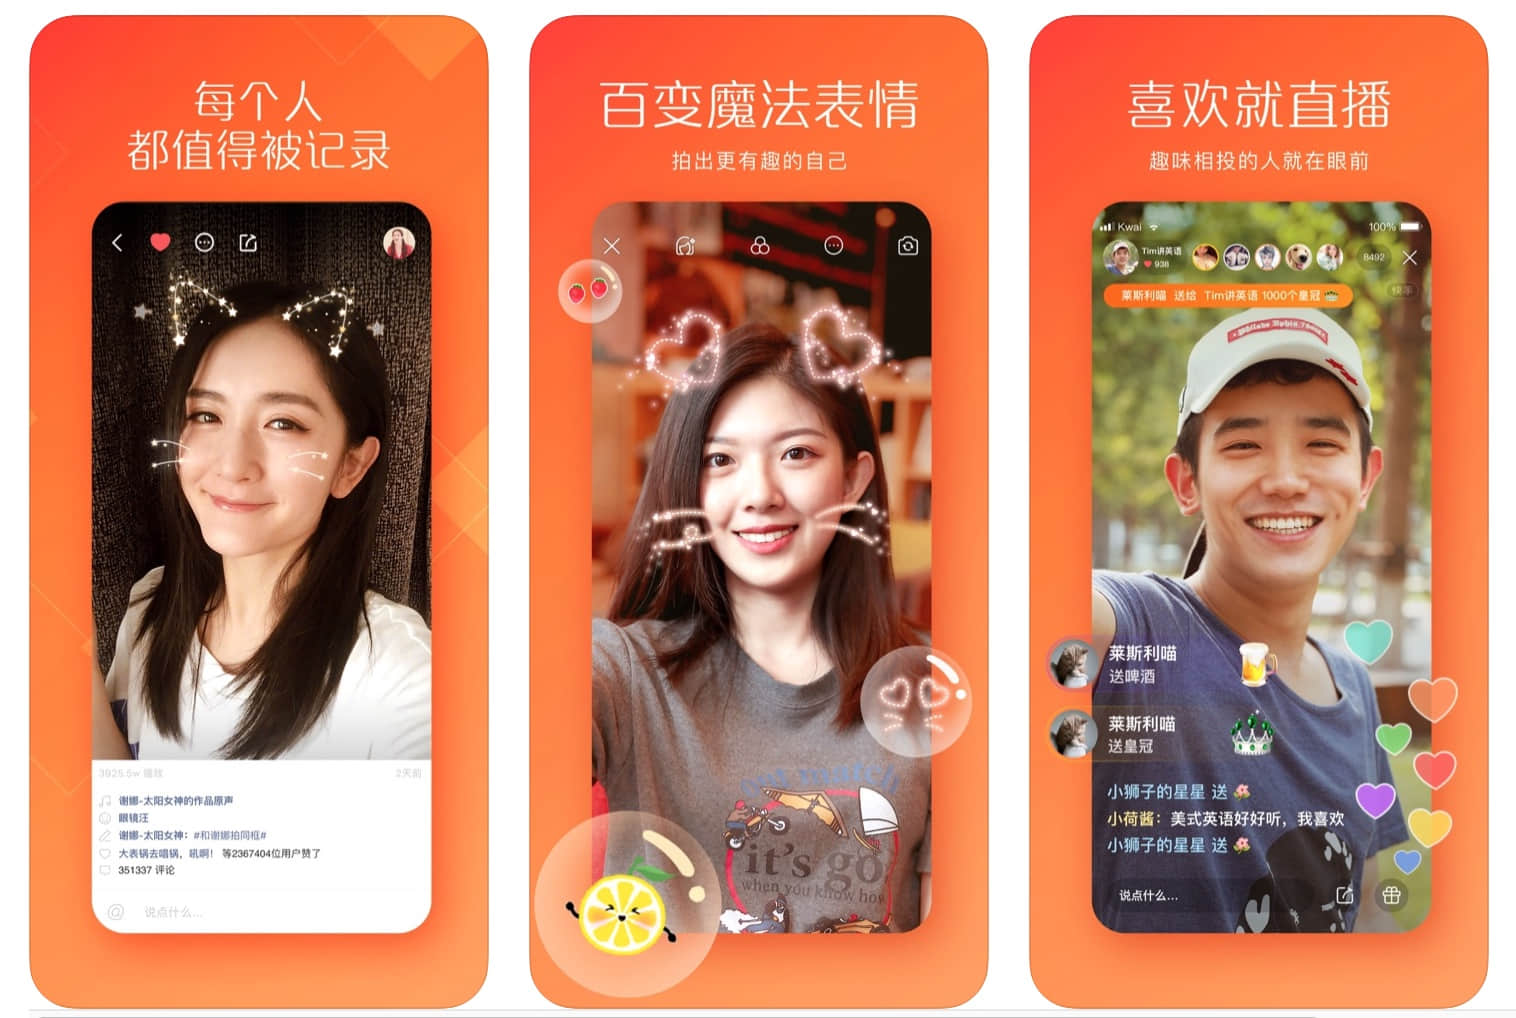 TikTok's Chinese rival Kuaishou files for Hong Kong IPO with over 300 million daily active users-cnTechPost